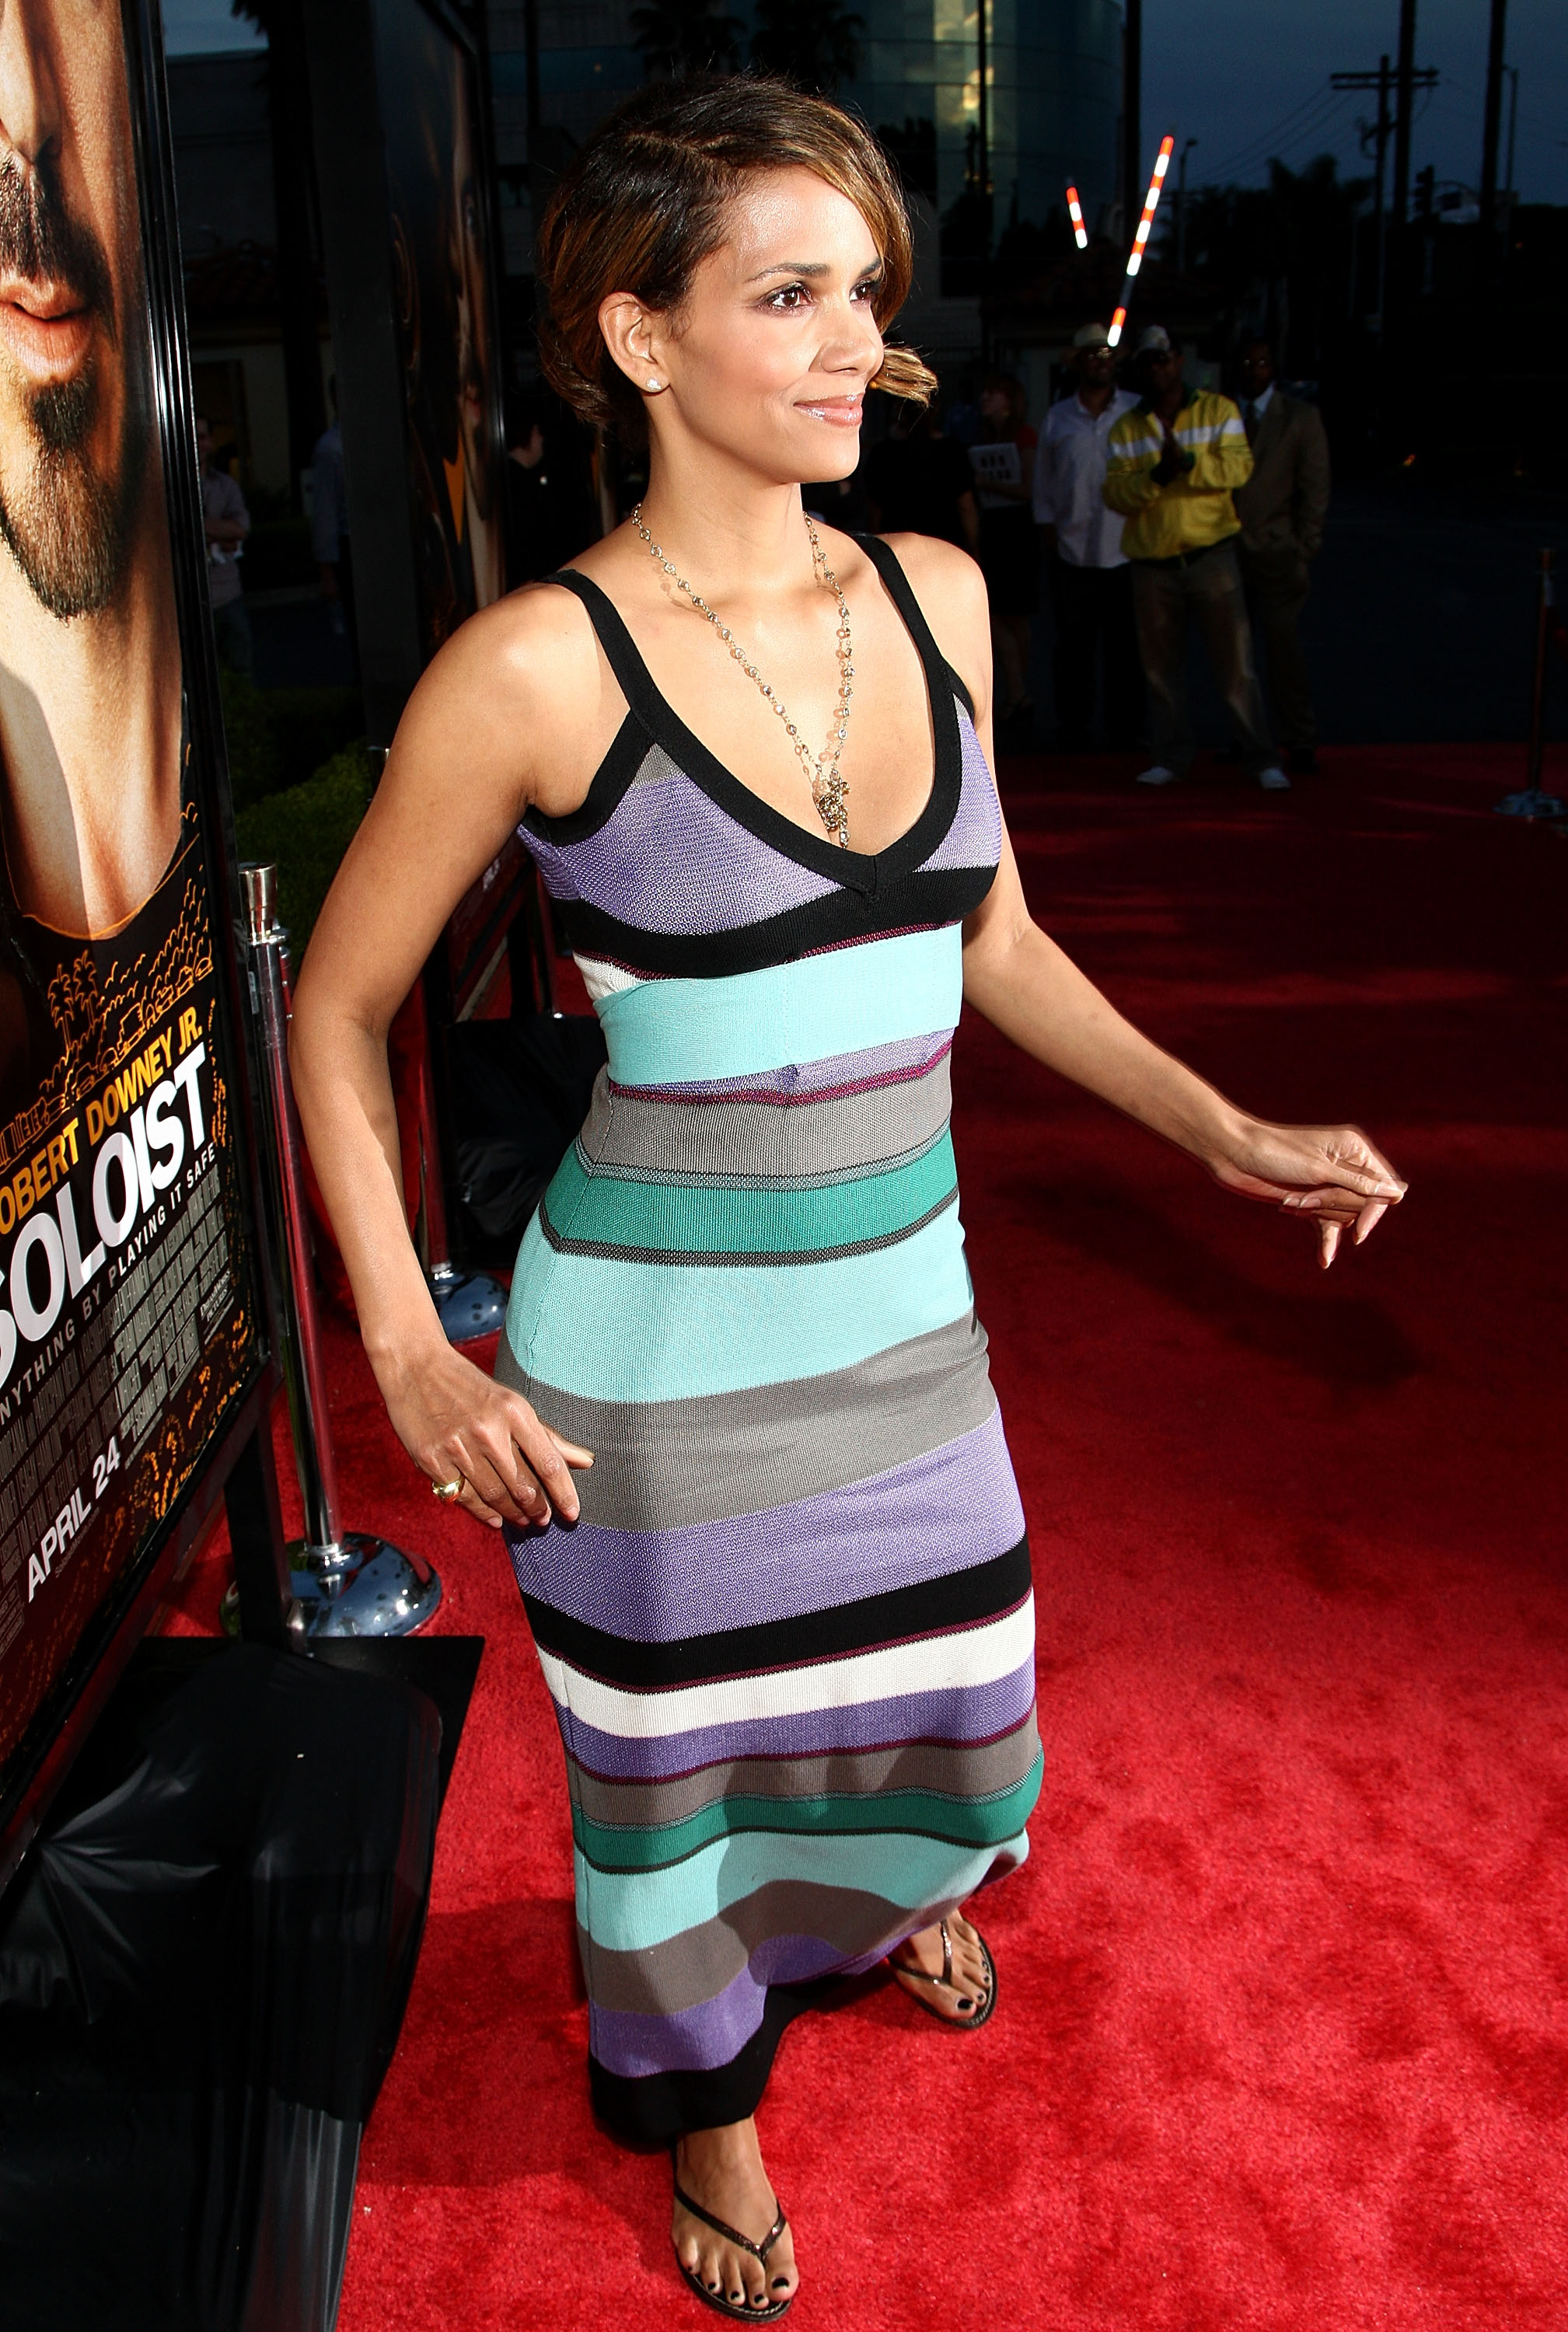 64437_Halle_Berry_The_Soloist_premiere_in_Los_Angeles_24_122_111lo.jpg